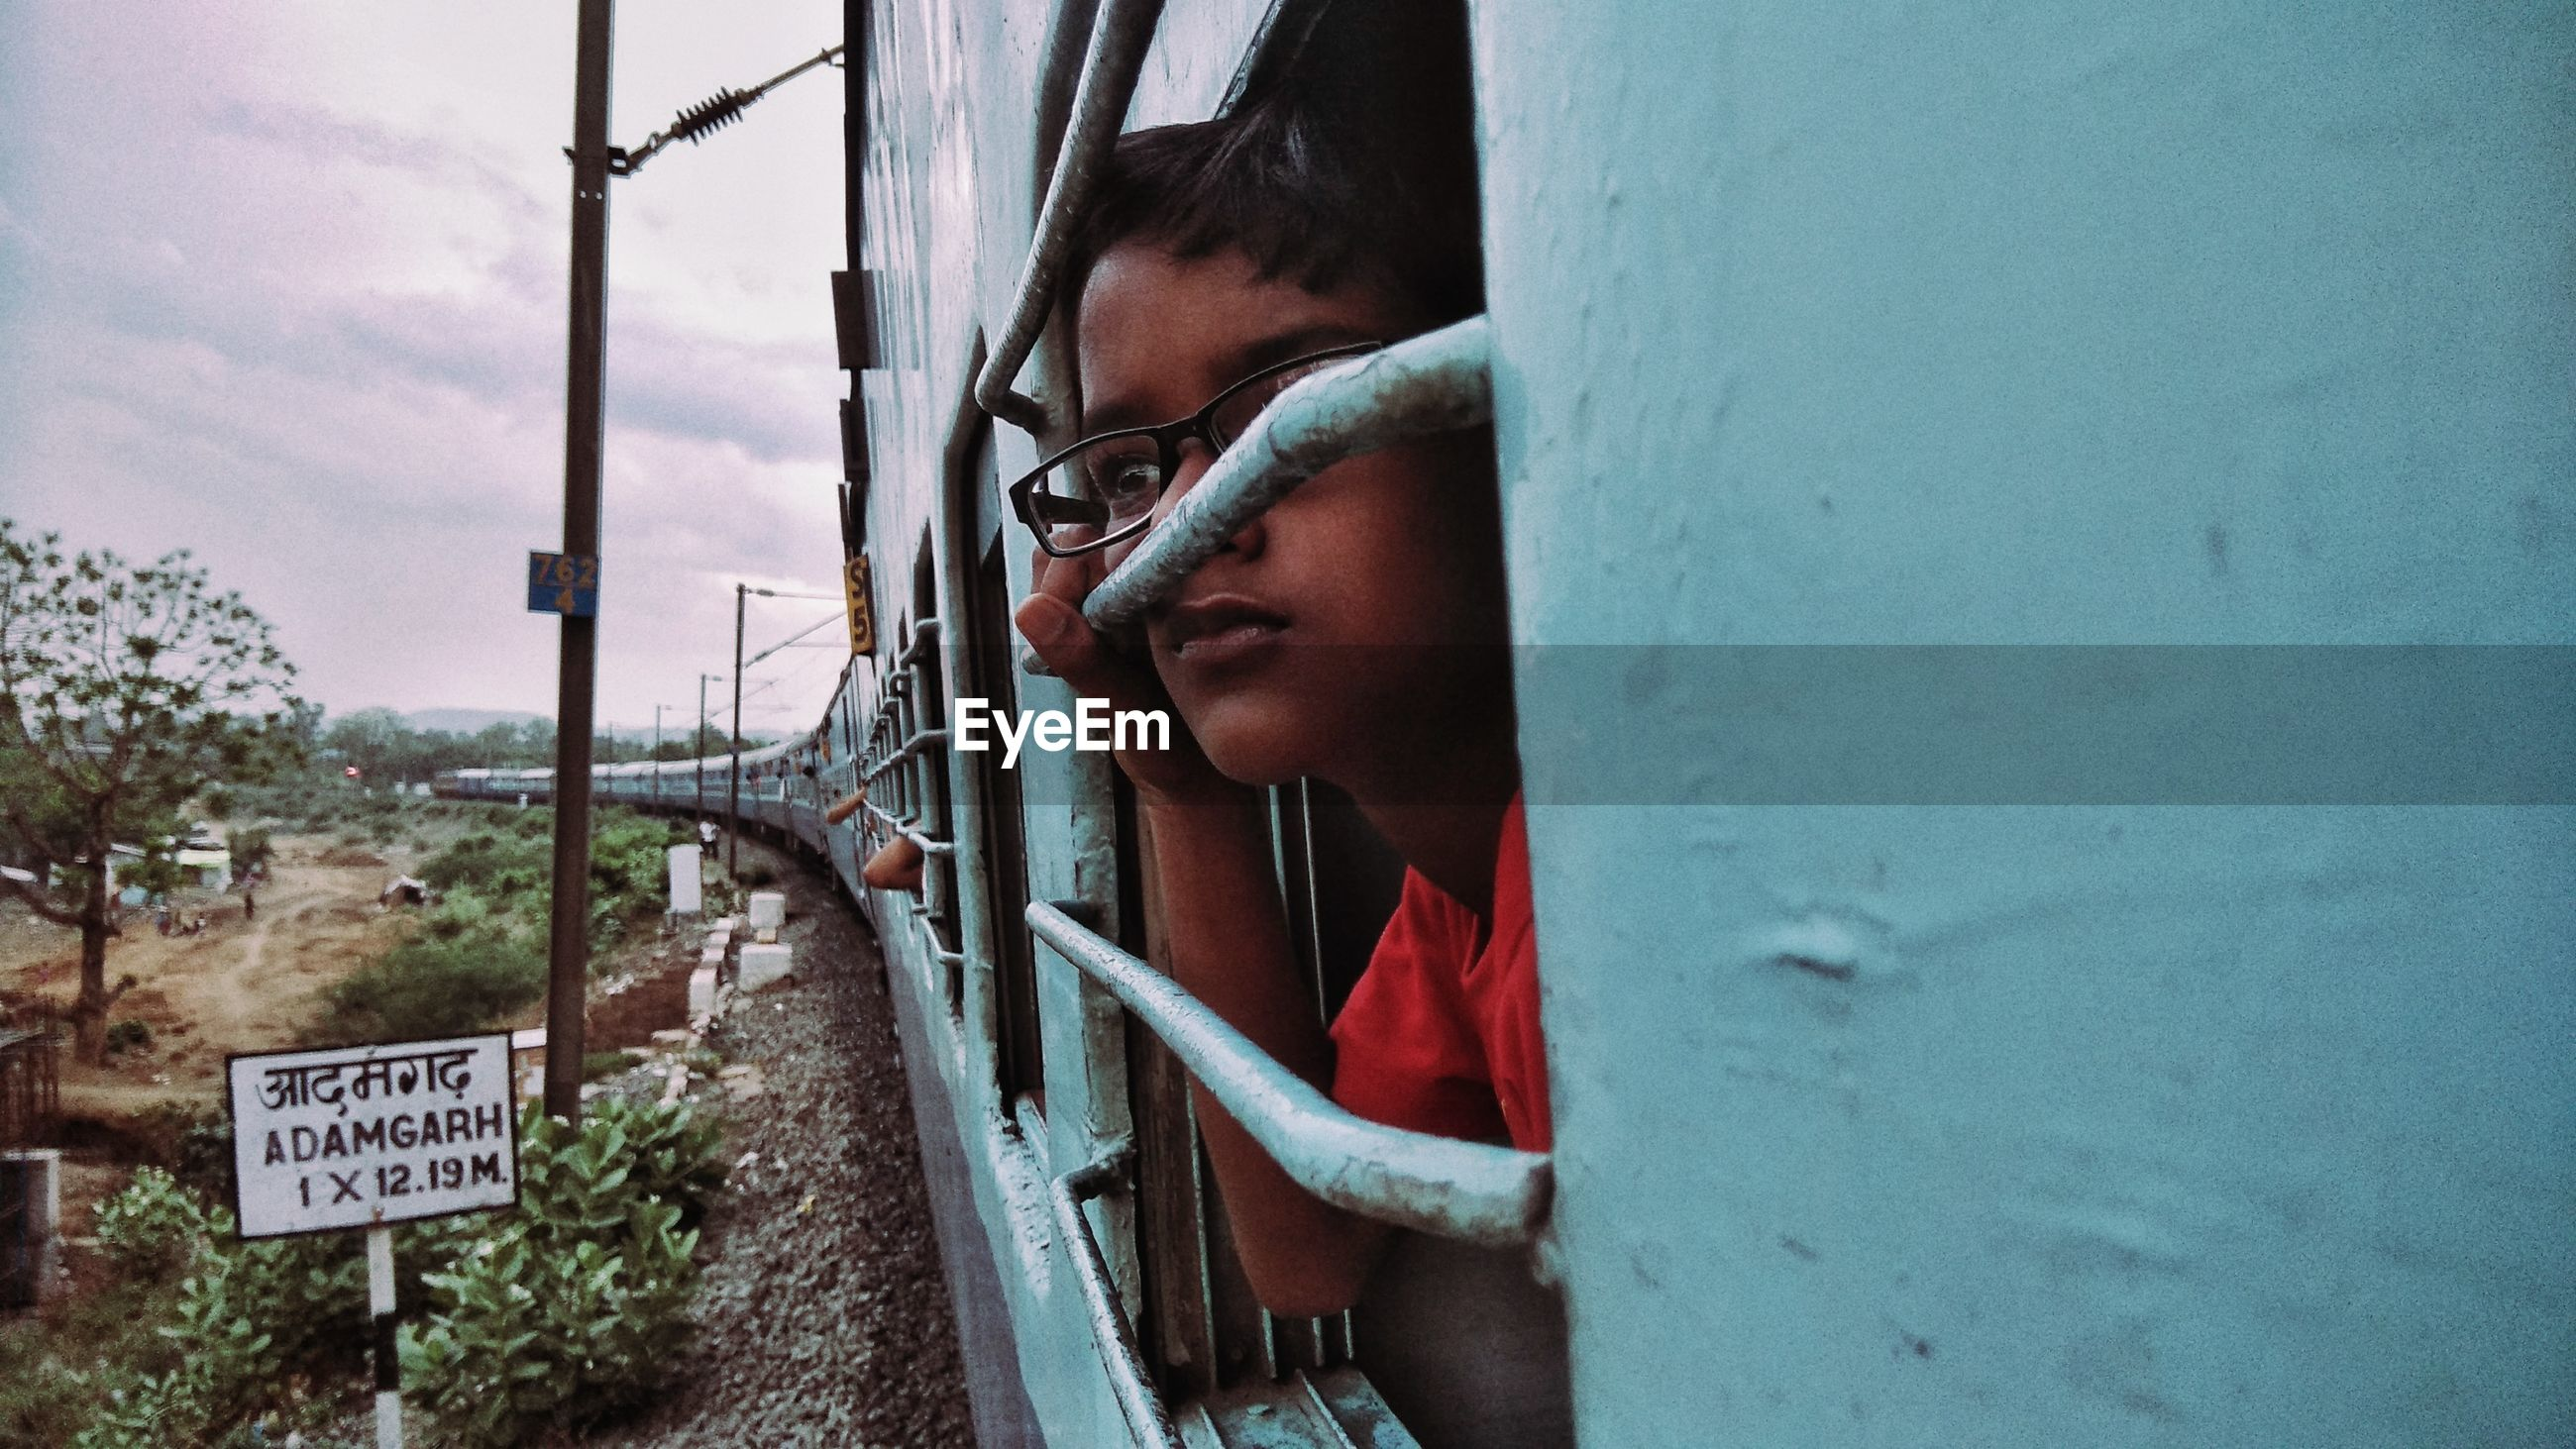 Close-up of boy looking through train window